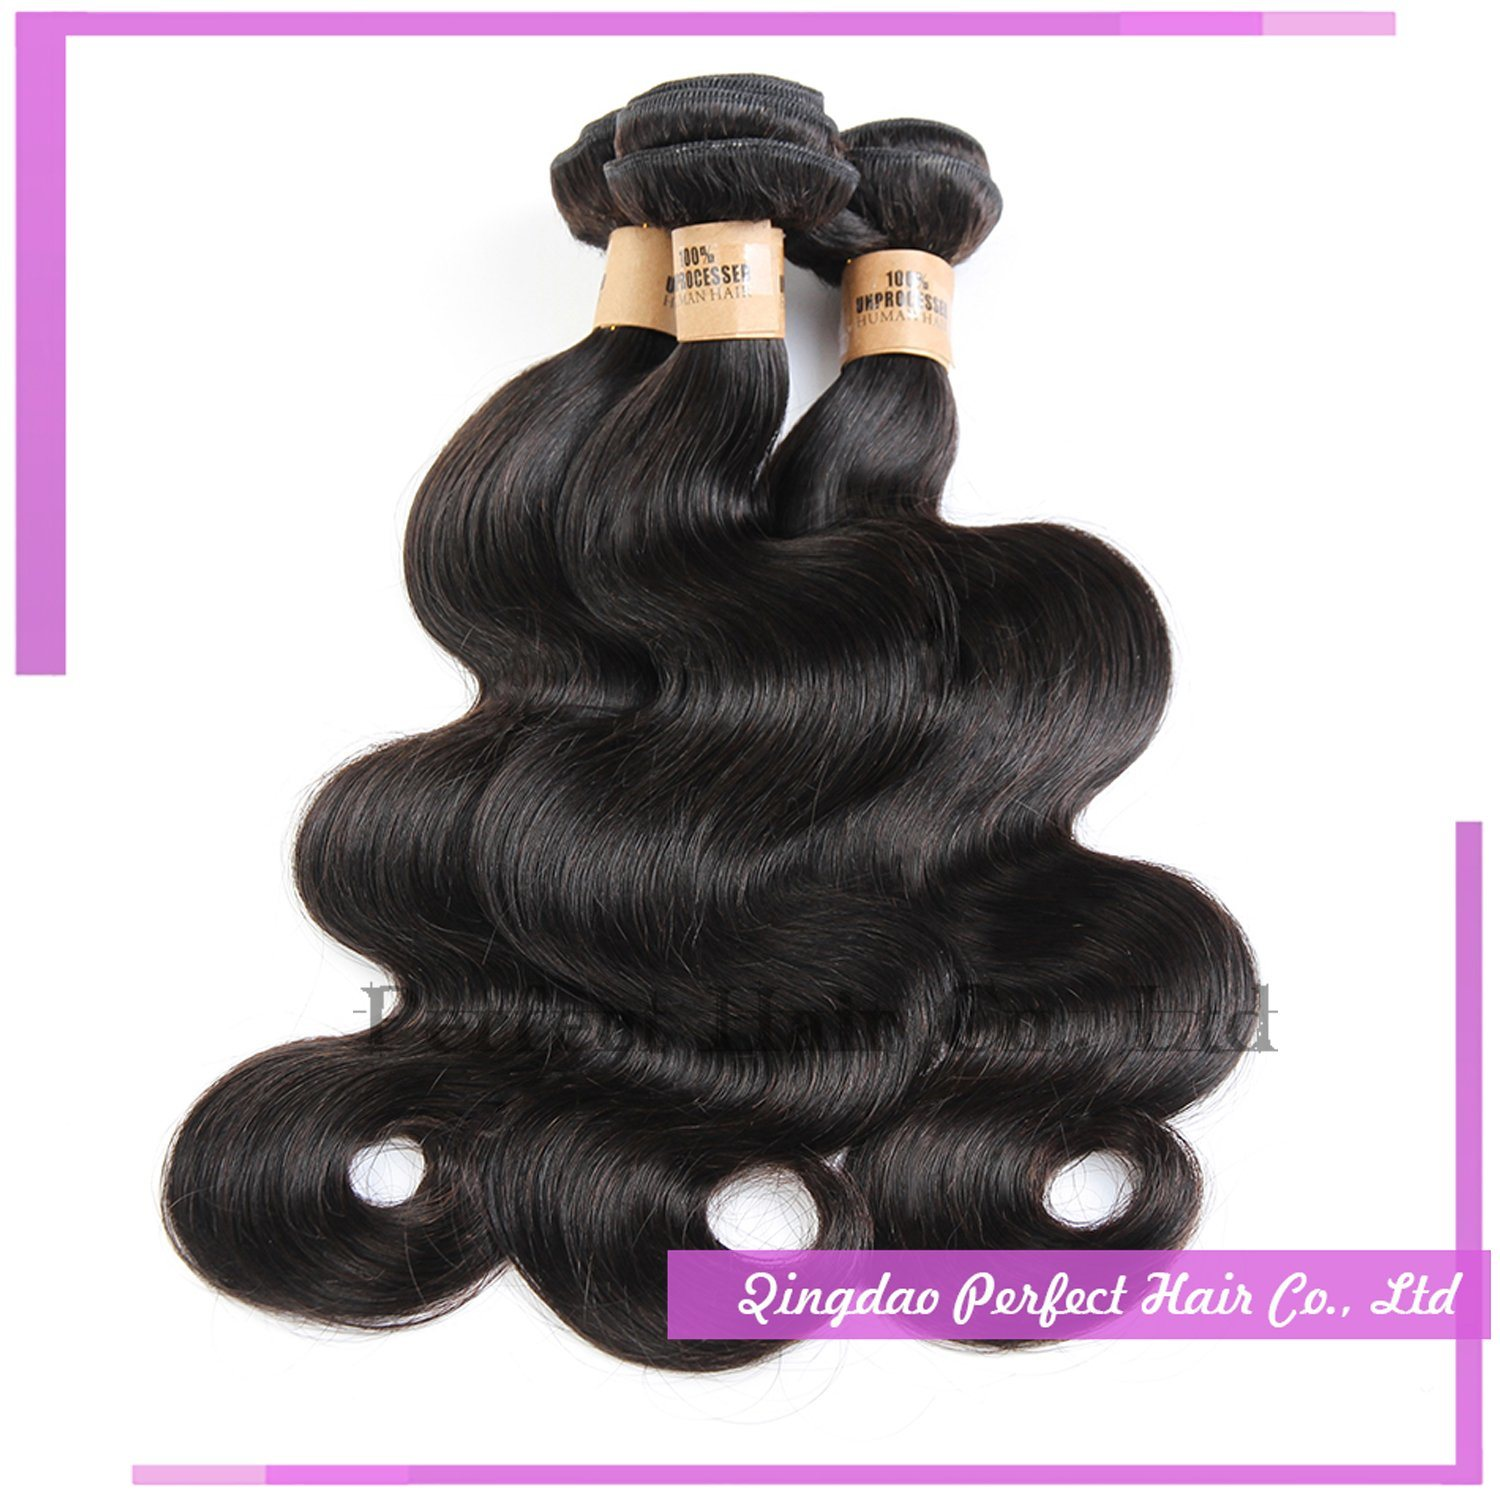 100% Brazilian Human Body Weave Hair Extensions